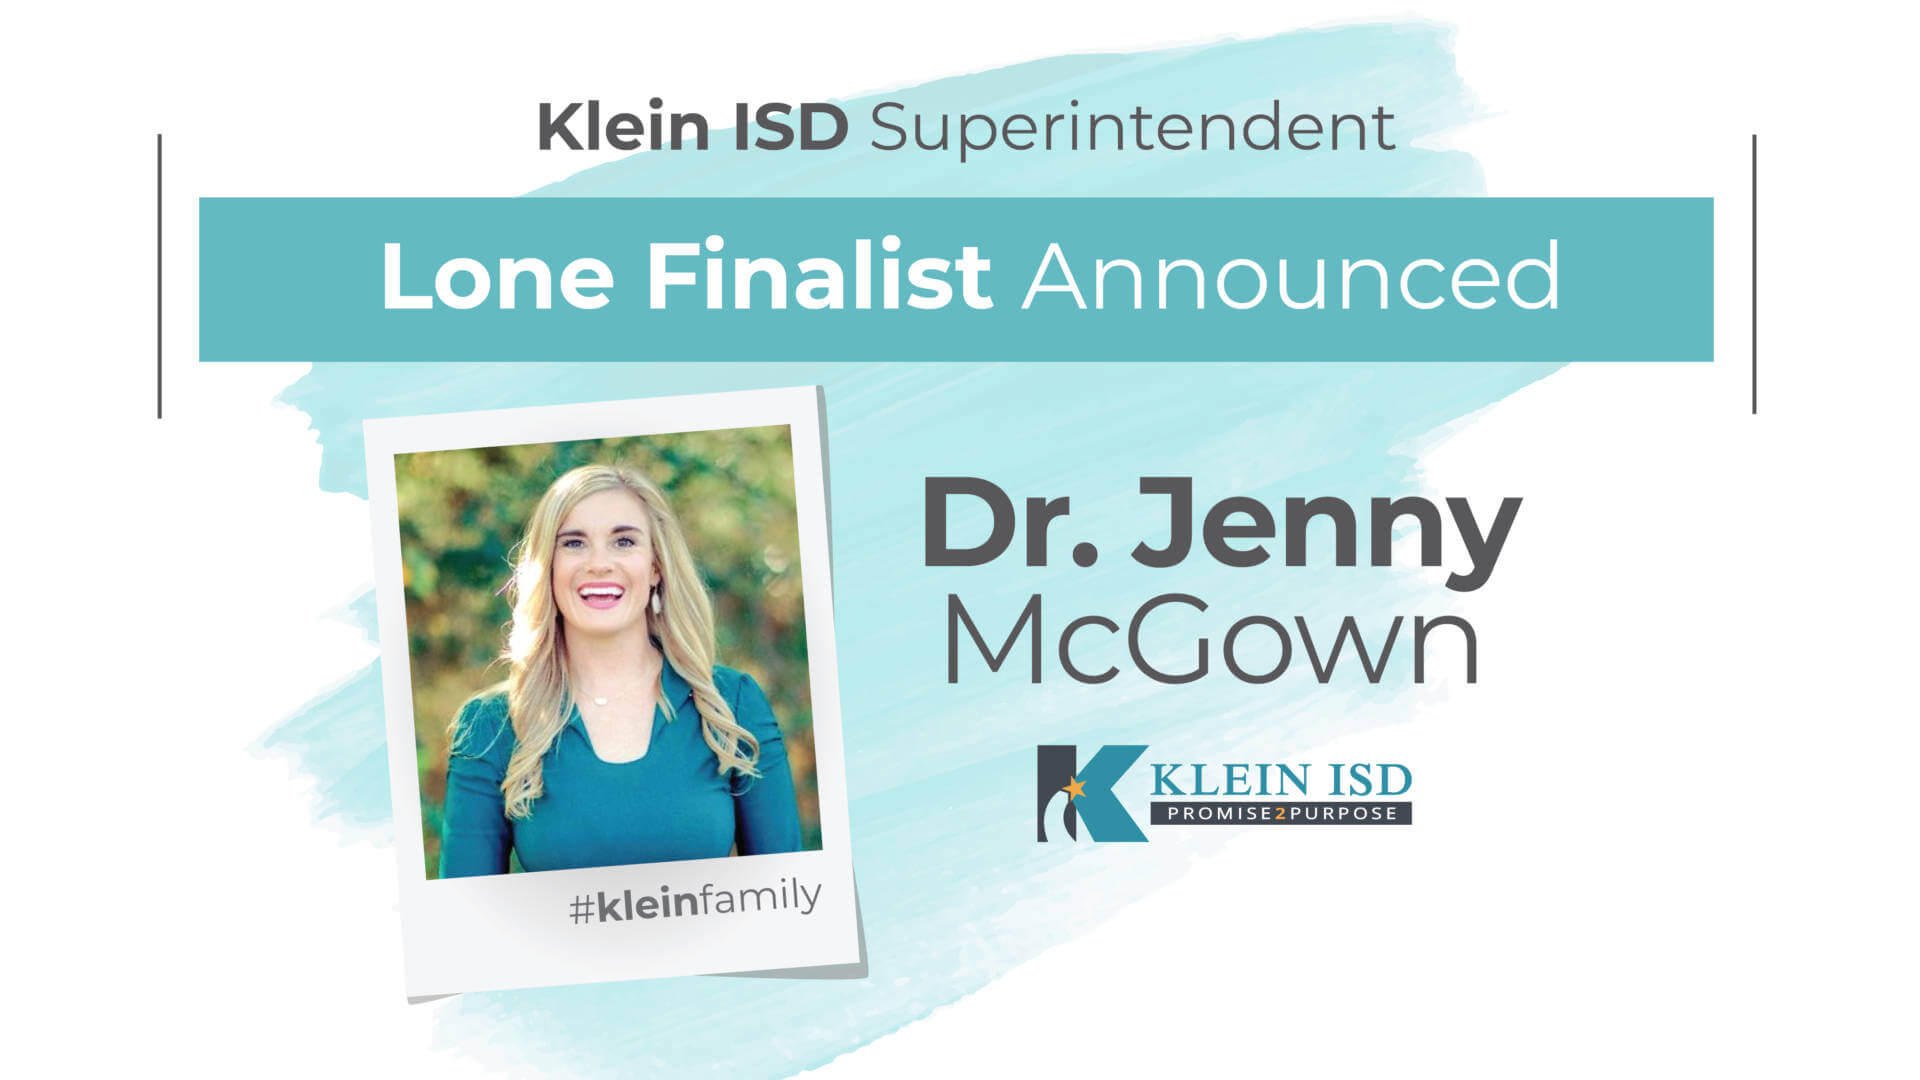 Klein ISD Board Unanimously Names Dr. Jenny McGown as Lone Finalist For Superintendent